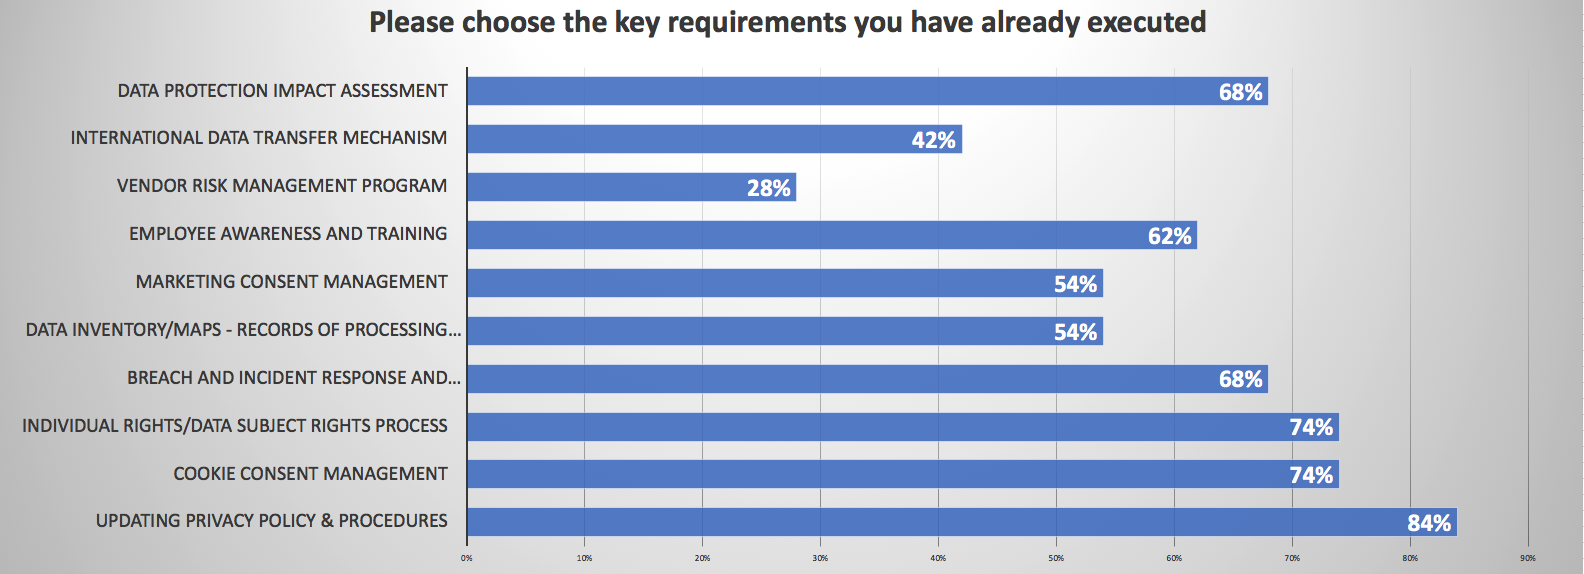 Please choose the key requirements you have already executed: